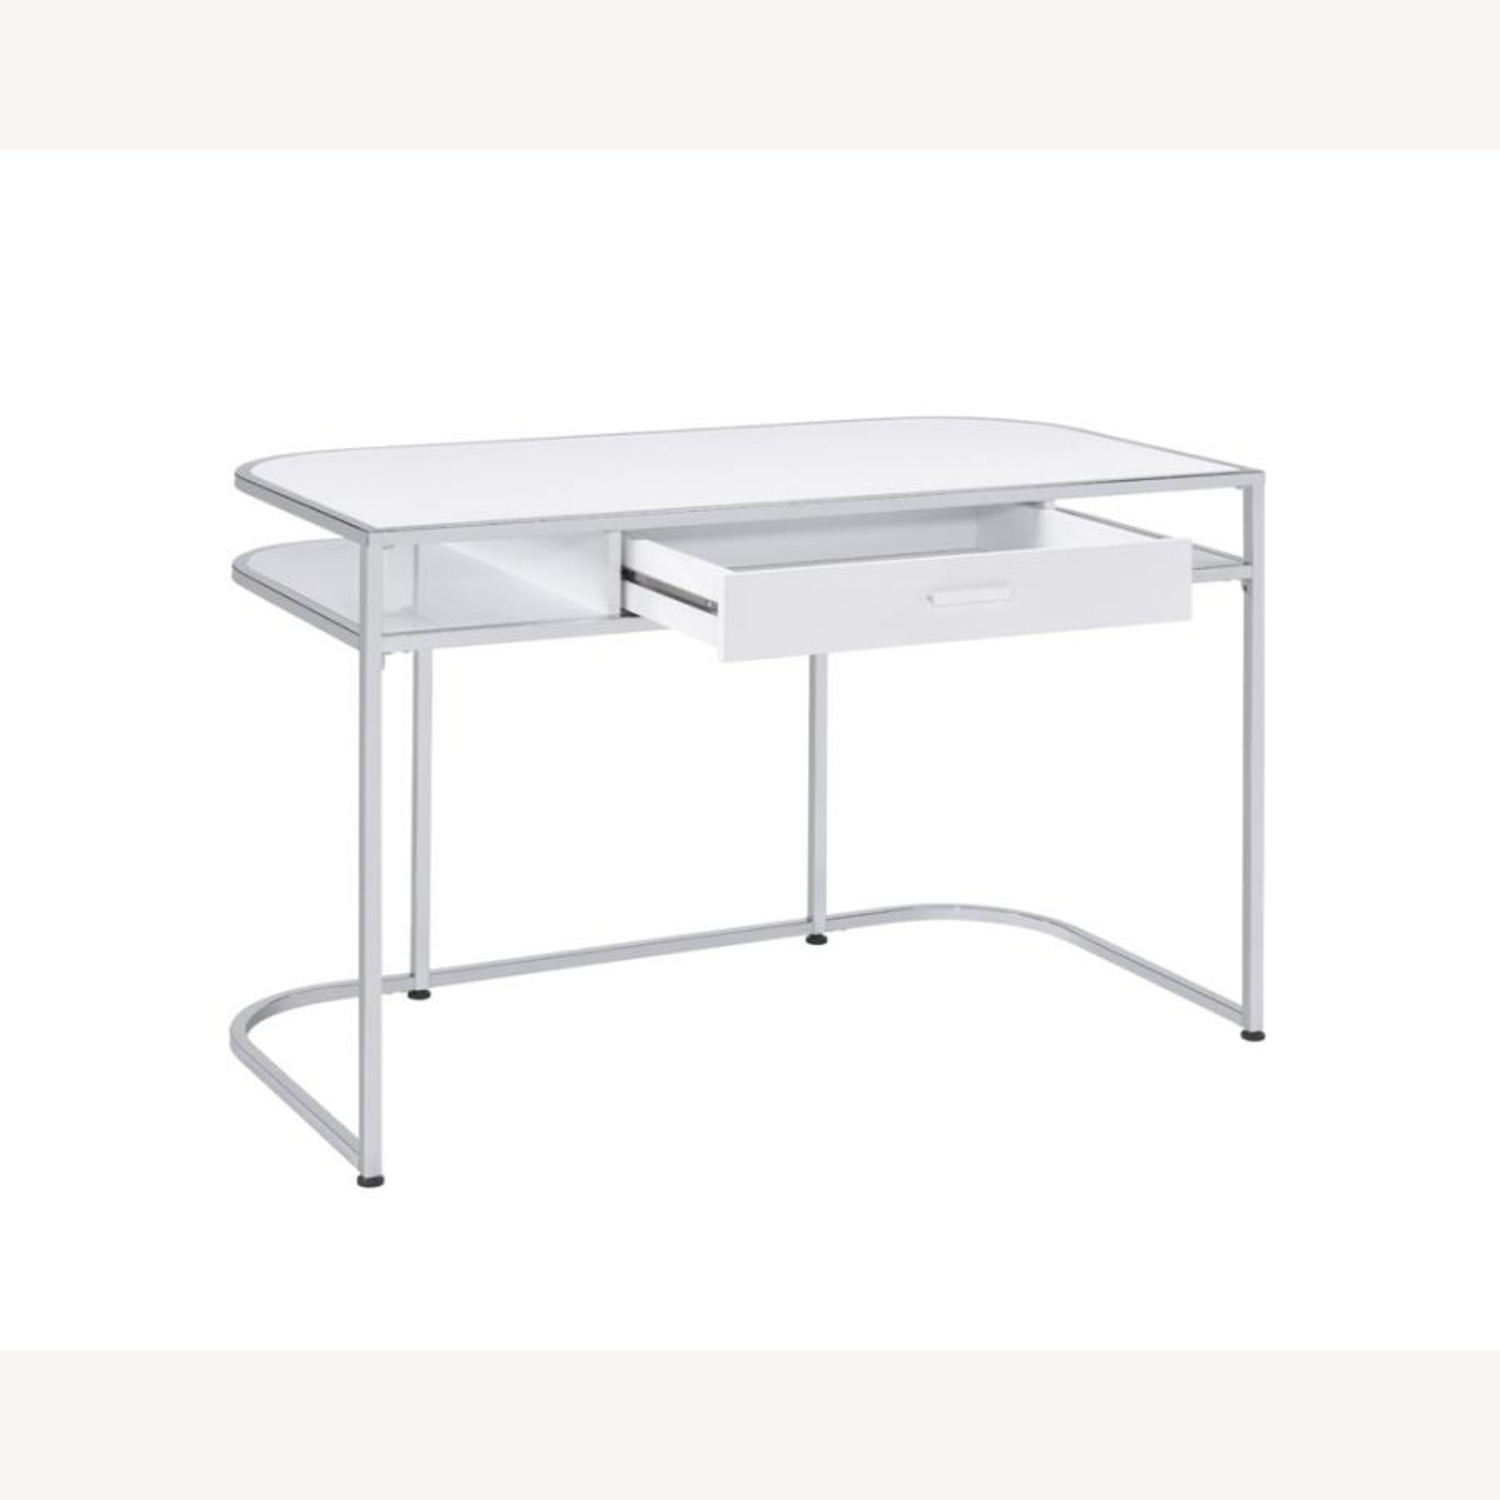 Writing Desk In White High Gloss Lacquer Finish - image-2